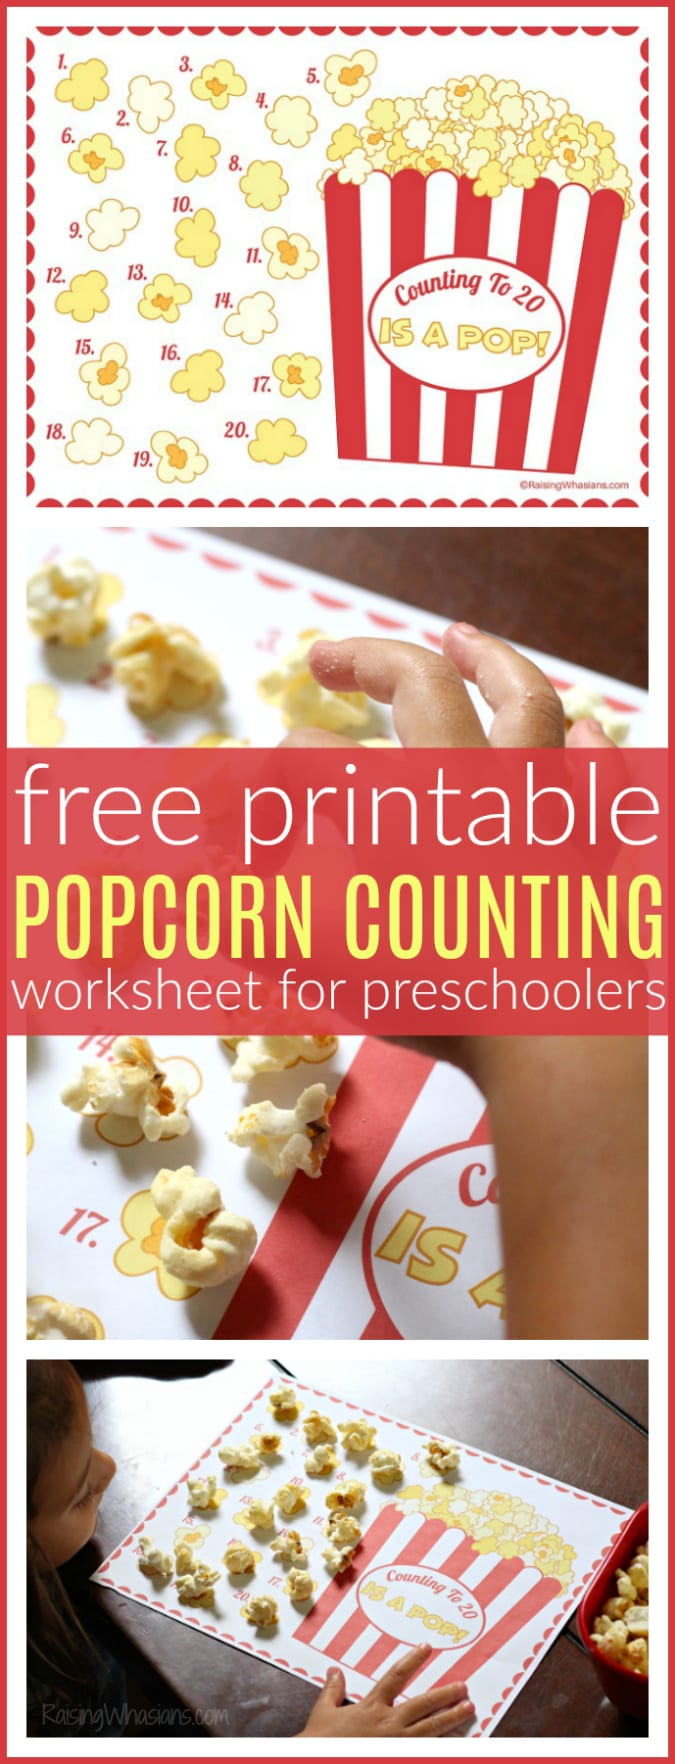 Free popcorn counting printable pinterest